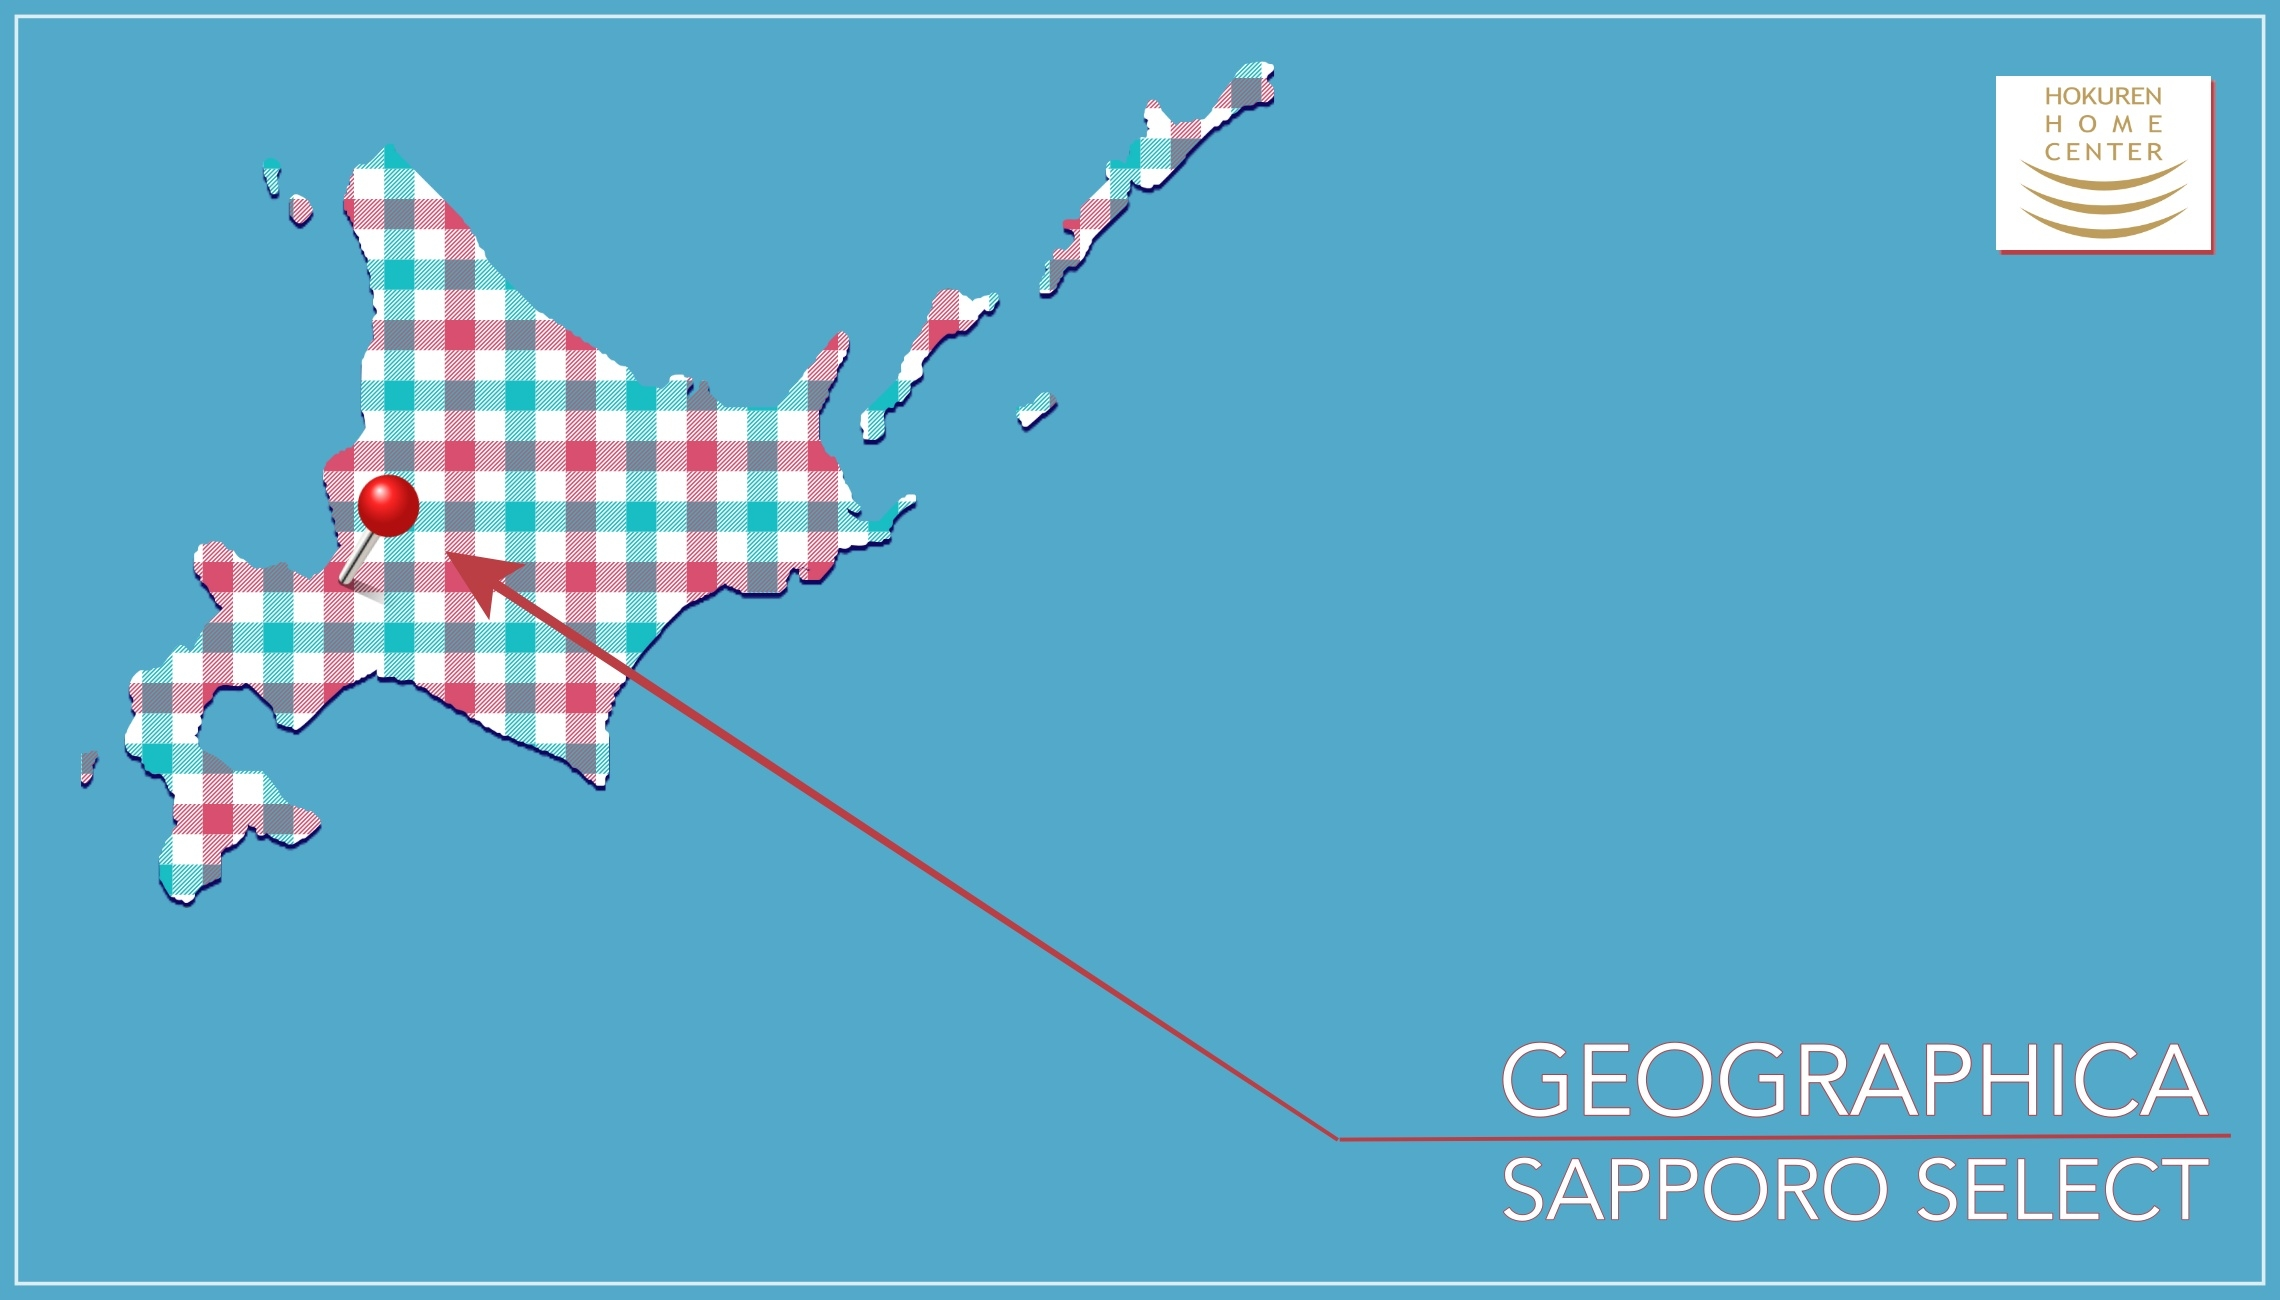 GEOGRAPHICA SAPPORO SELECT